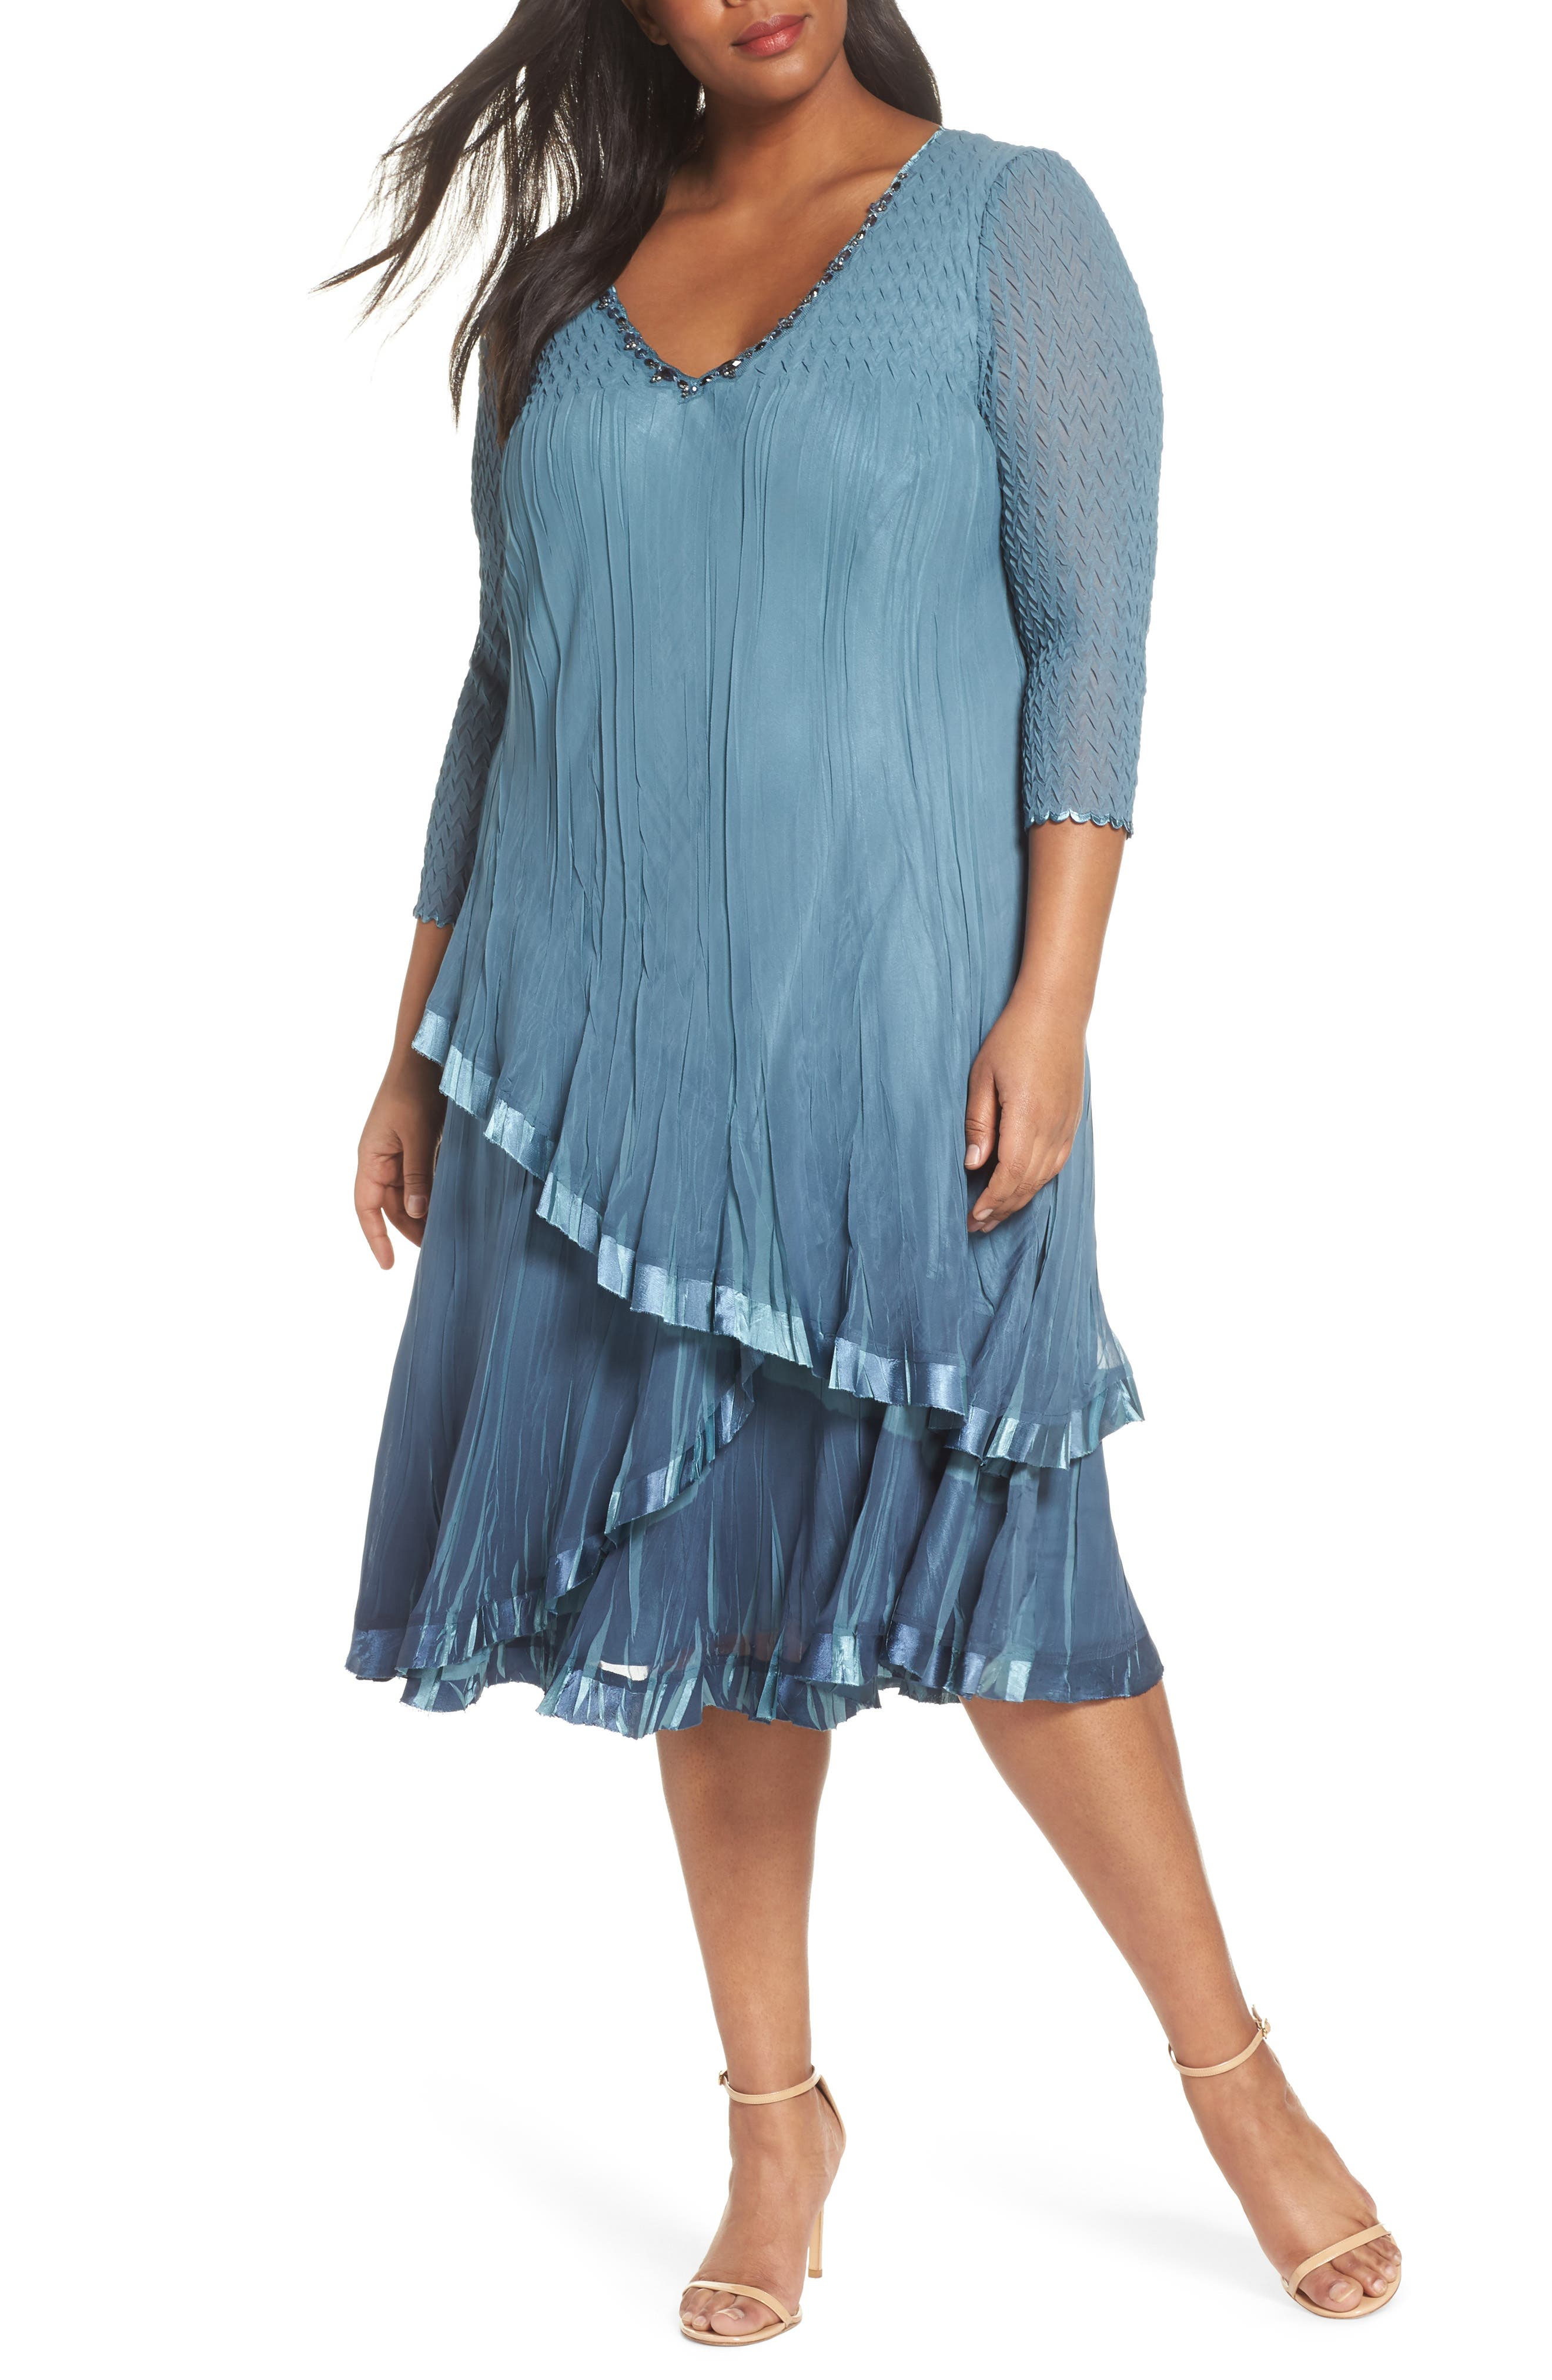 Bead Trim Tiered Chiffon Dress,                         Main,                         color, Silver Blue Night Ombre